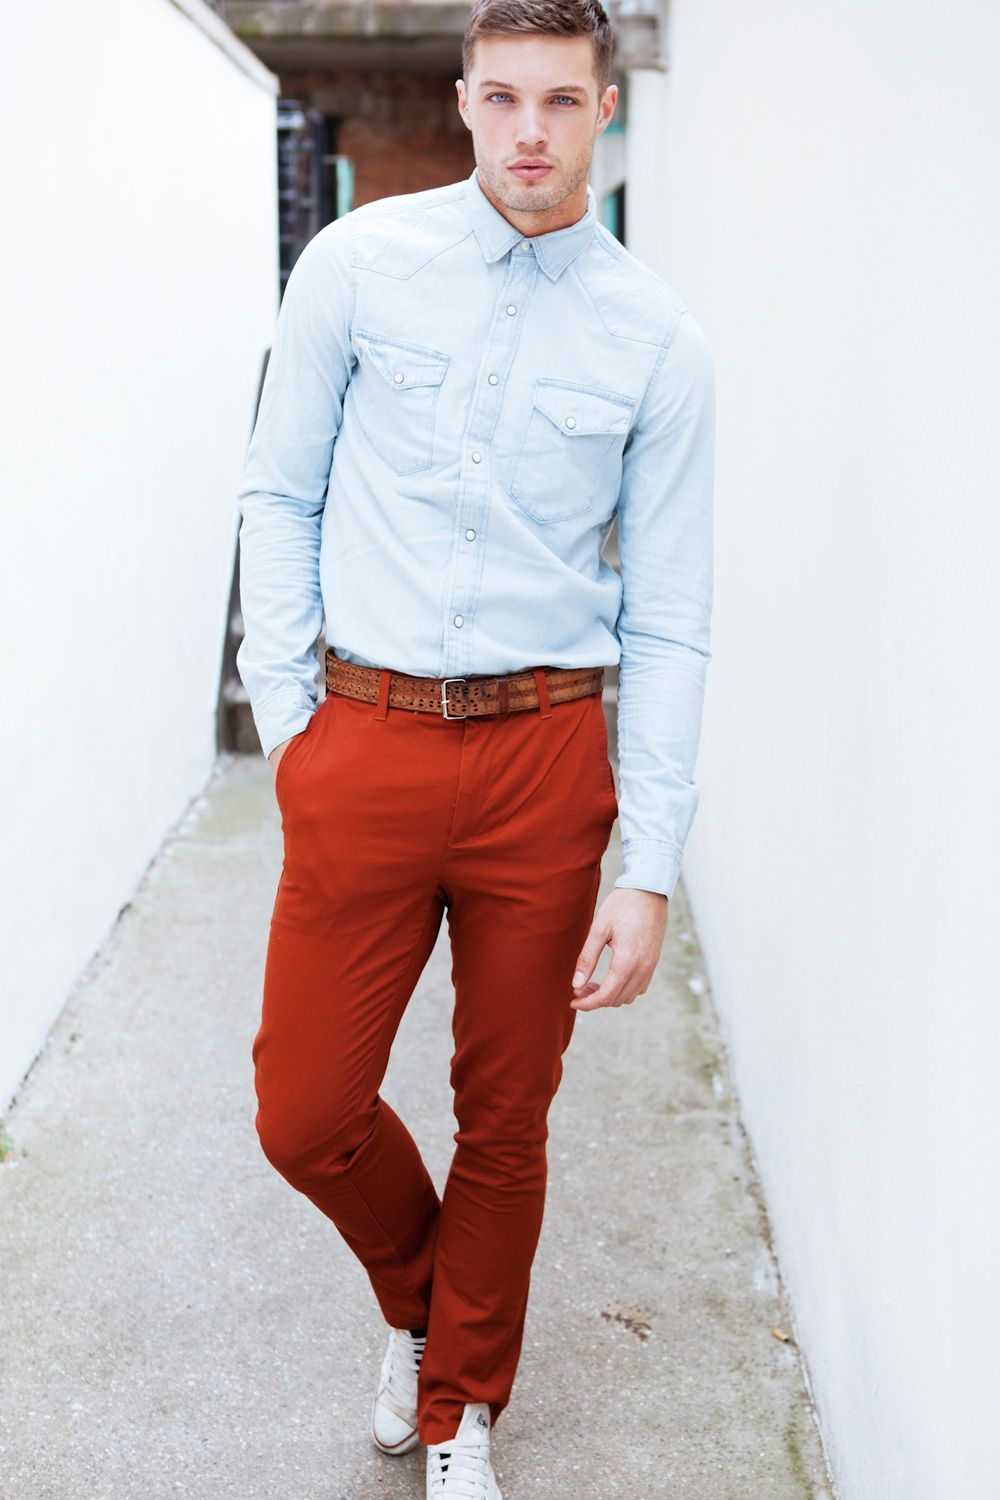 lewis-holland-clarke-jacobus-snyman | Fashion for the Mens ...